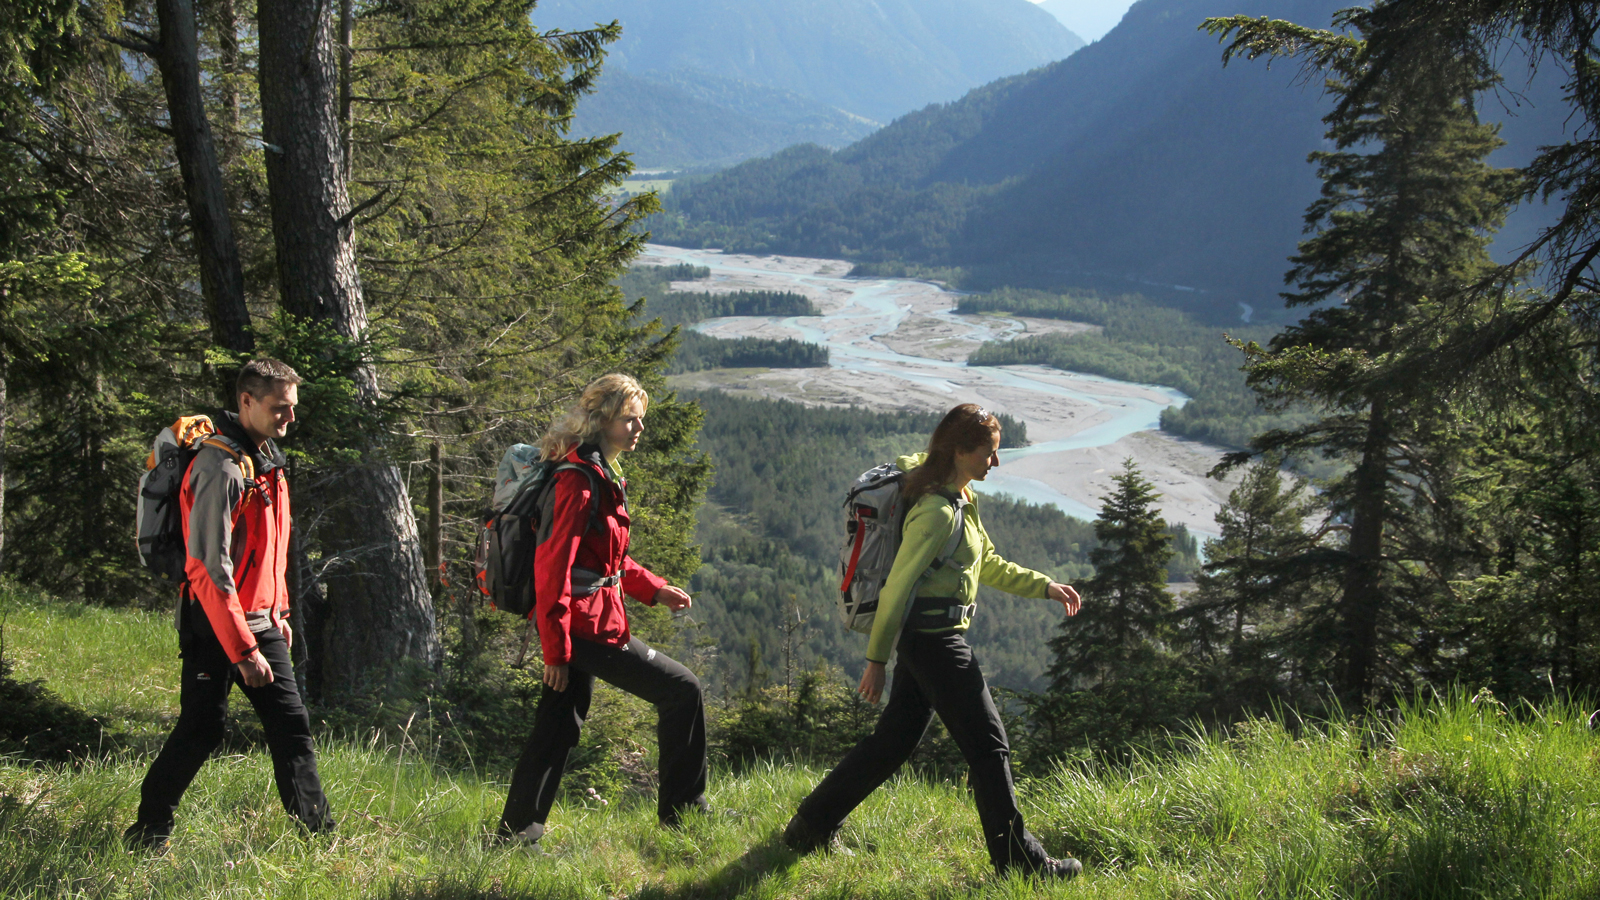 23 of the world's best hiking trails | CNN Travel